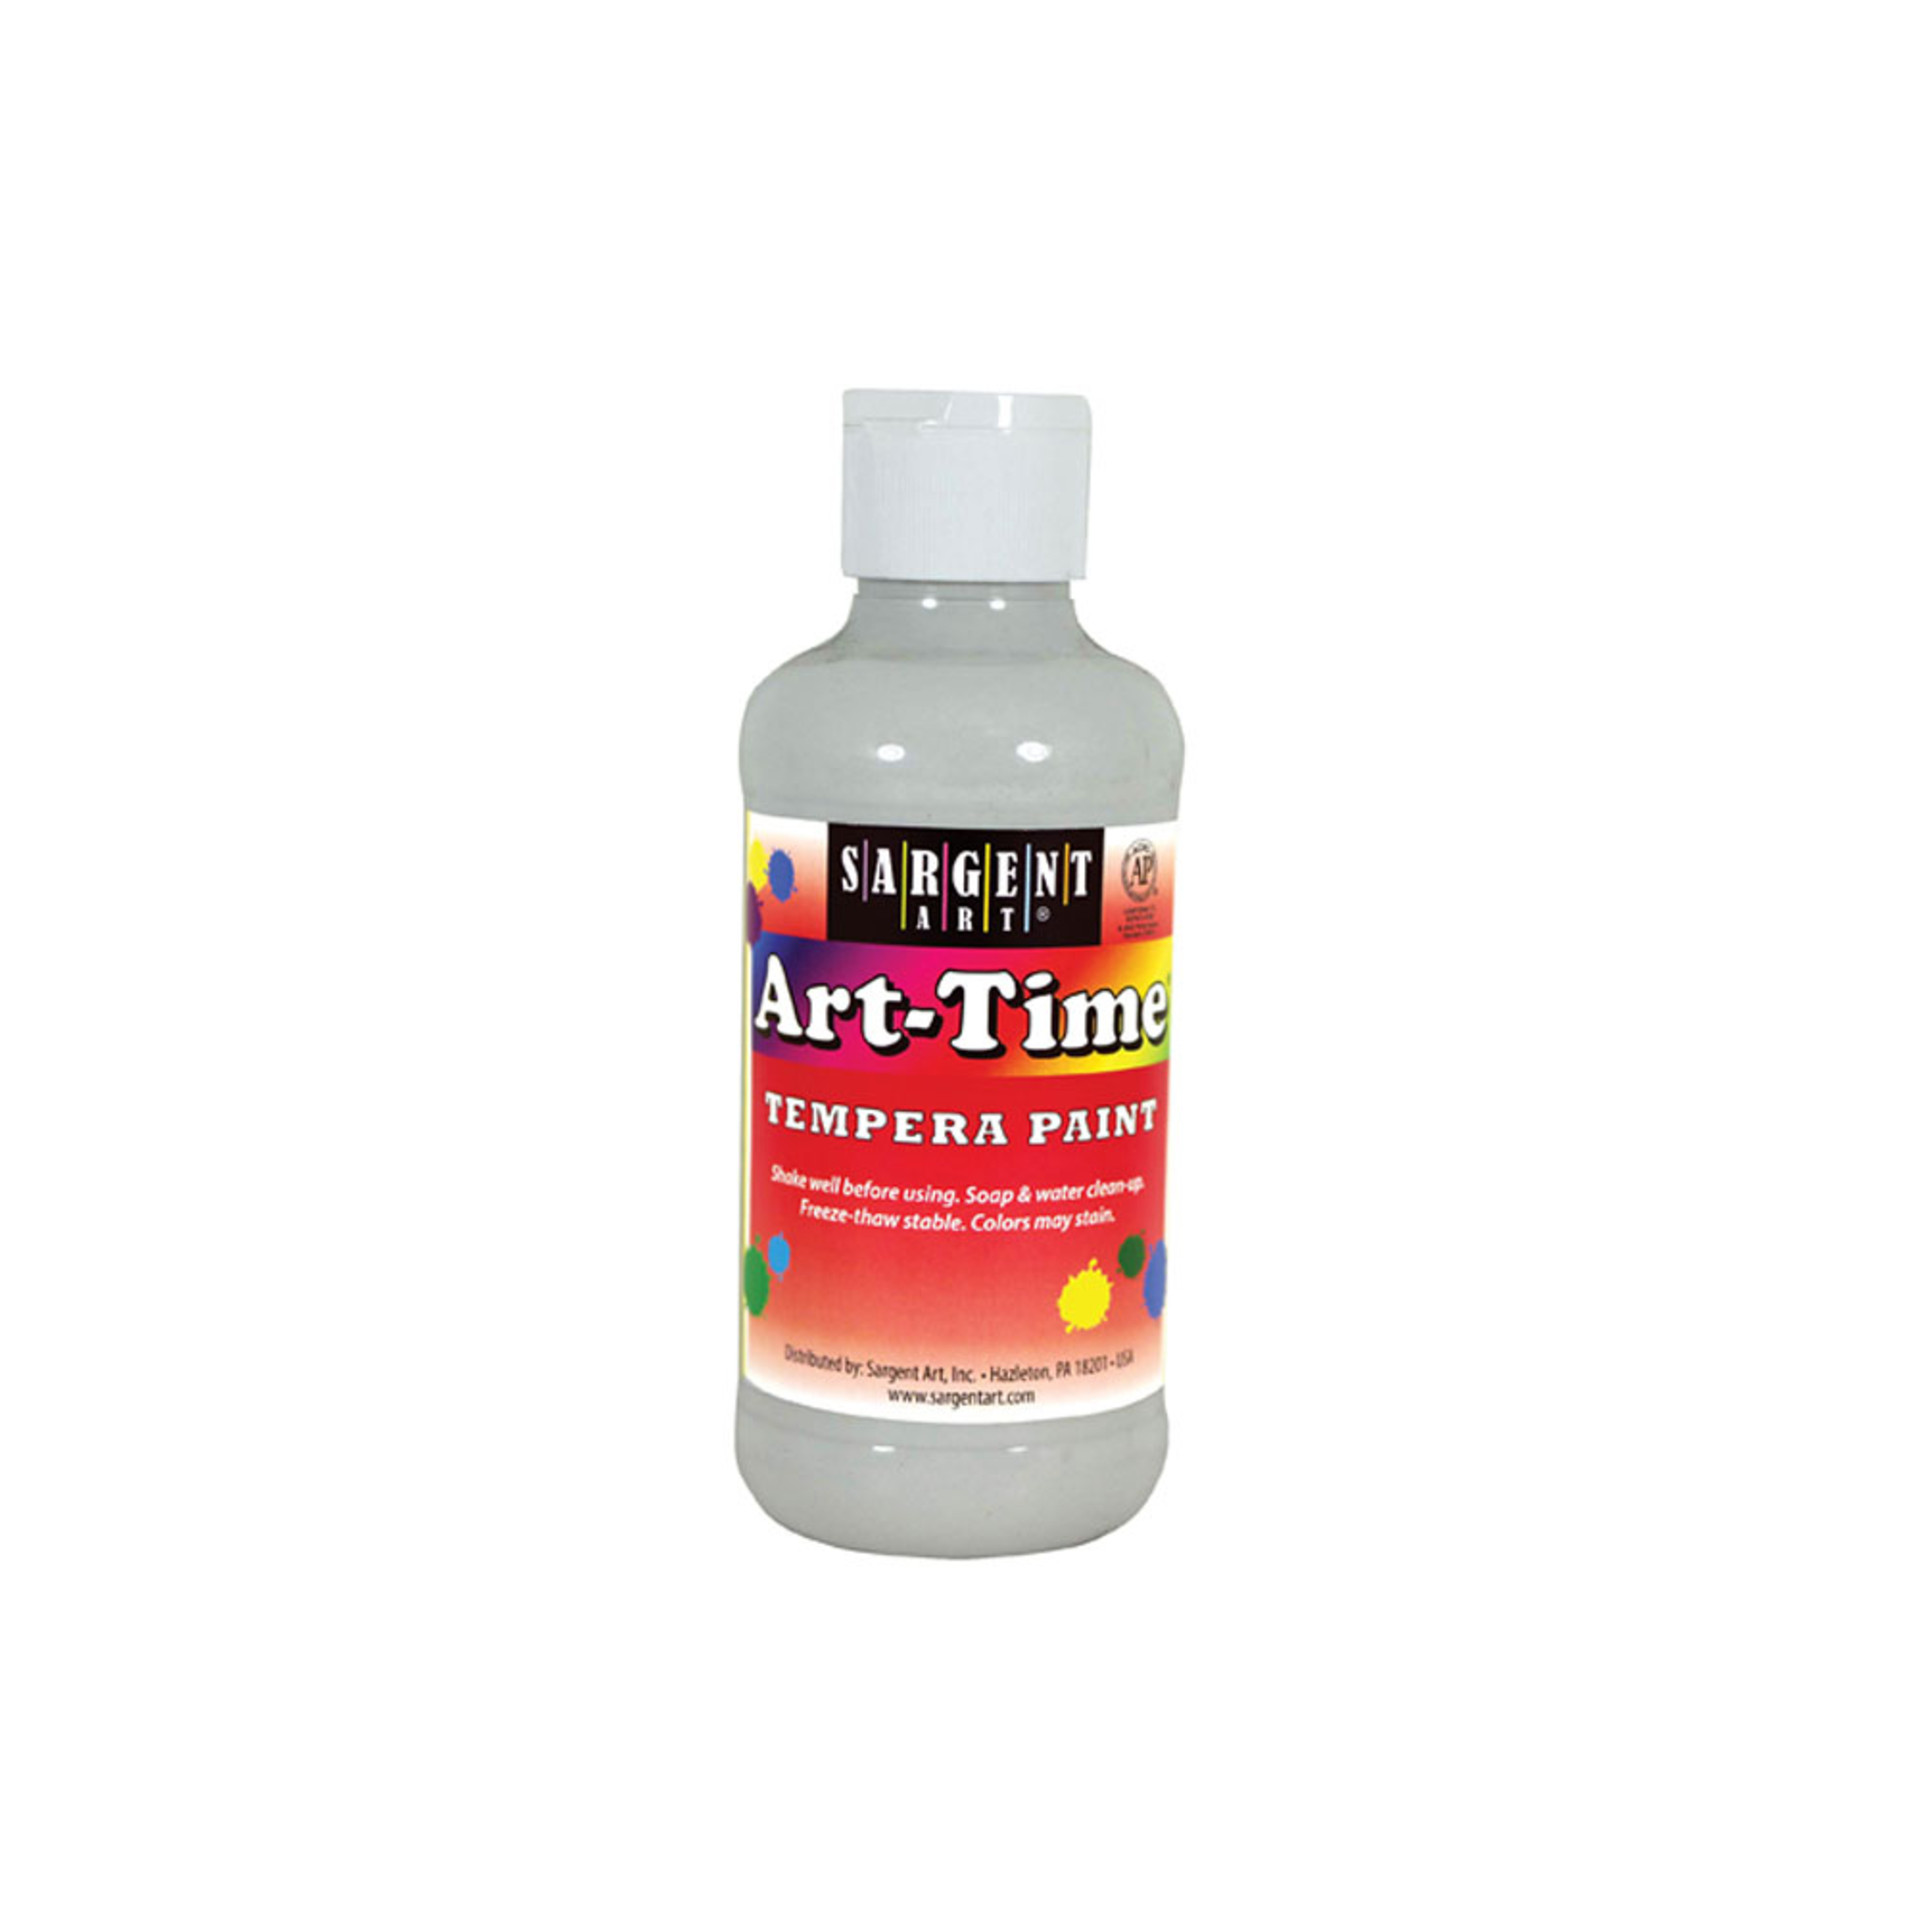 Sargent Art Time 8oz. Tempera Paint – White